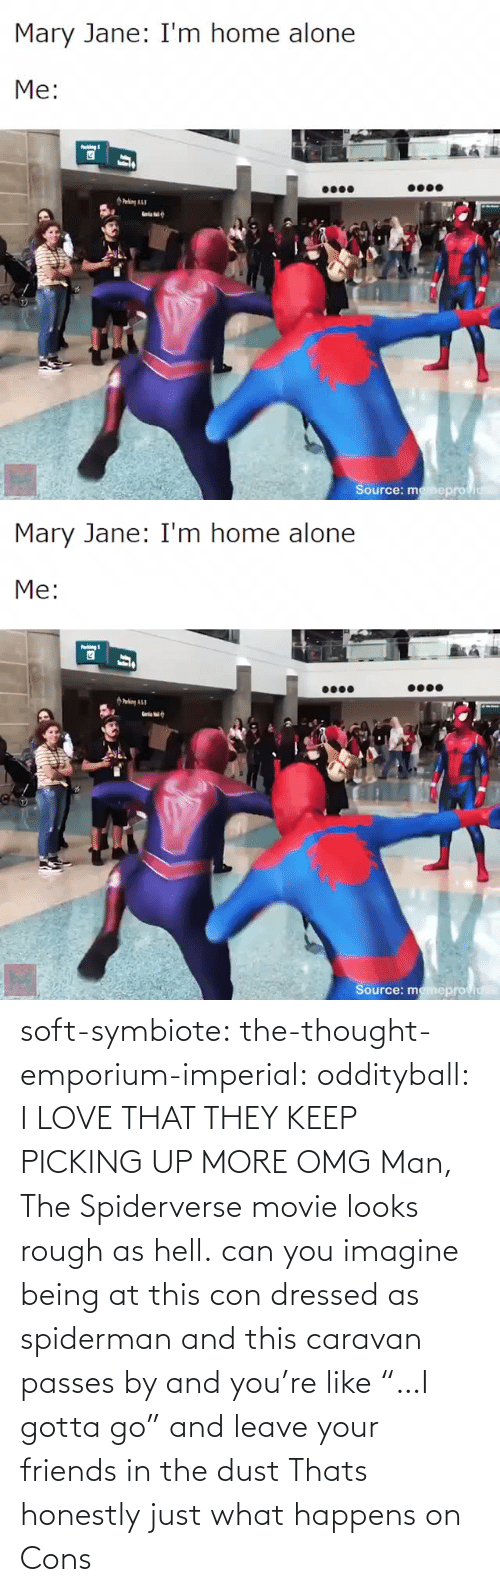 "imagine: soft-symbiote: the-thought-emporium-imperial:  oddityball: I LOVE THAT THEY KEEP PICKING UP MORE OMG Man, The Spiderverse movie looks rough as hell.   can you imagine being at this con dressed as spiderman and this caravan passes by and you're like ""…I gotta go"" and leave your friends in the dust     Thats honestly just what happens on Cons"